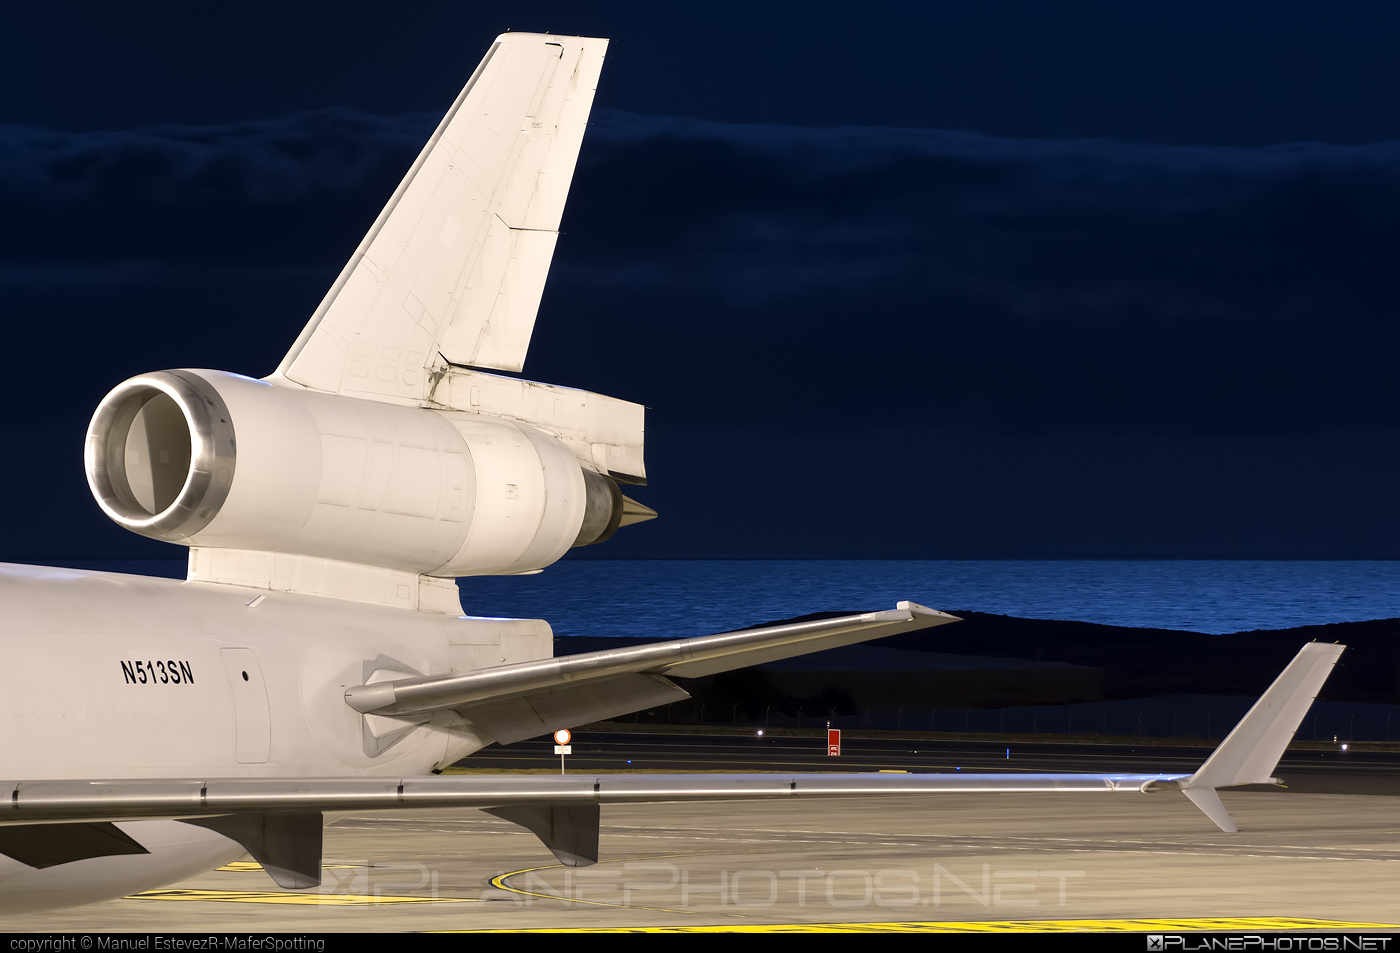 Western Global Airlines McDonnell Douglas MD-11F - N513SN